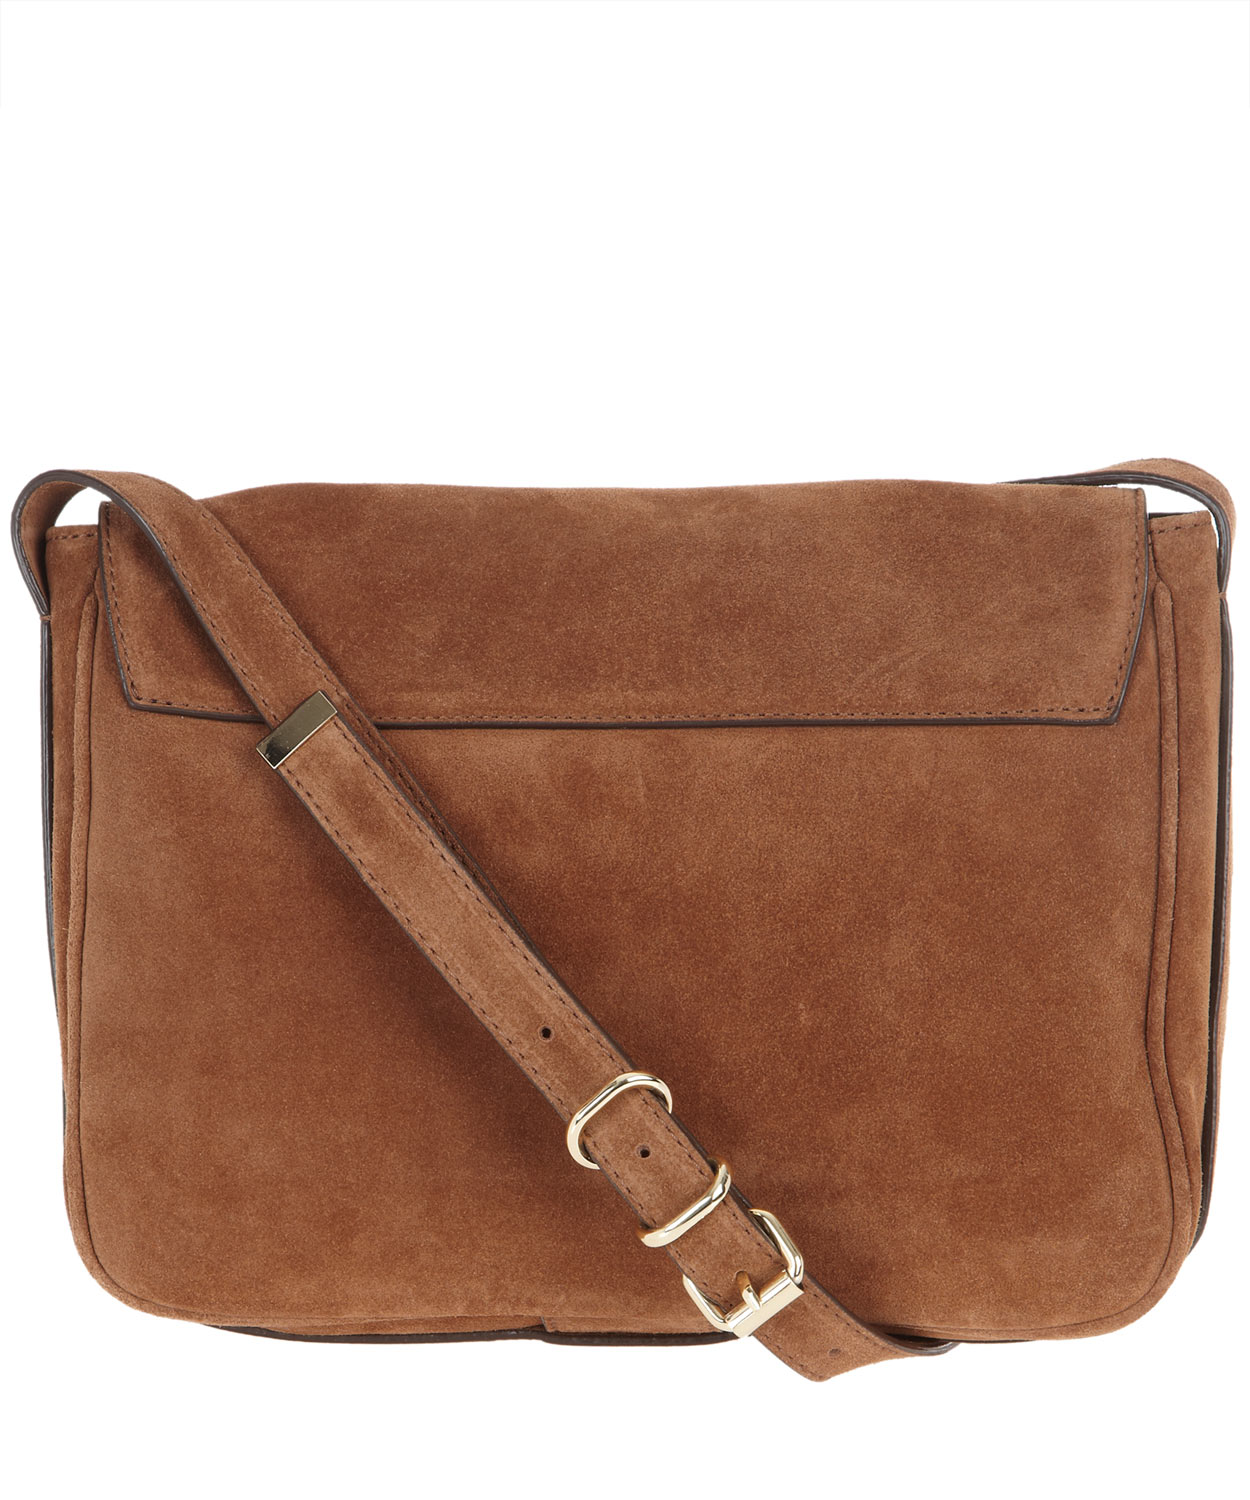 Tila march Tan Manon Suede Shoulder Bag in Brown | Lyst